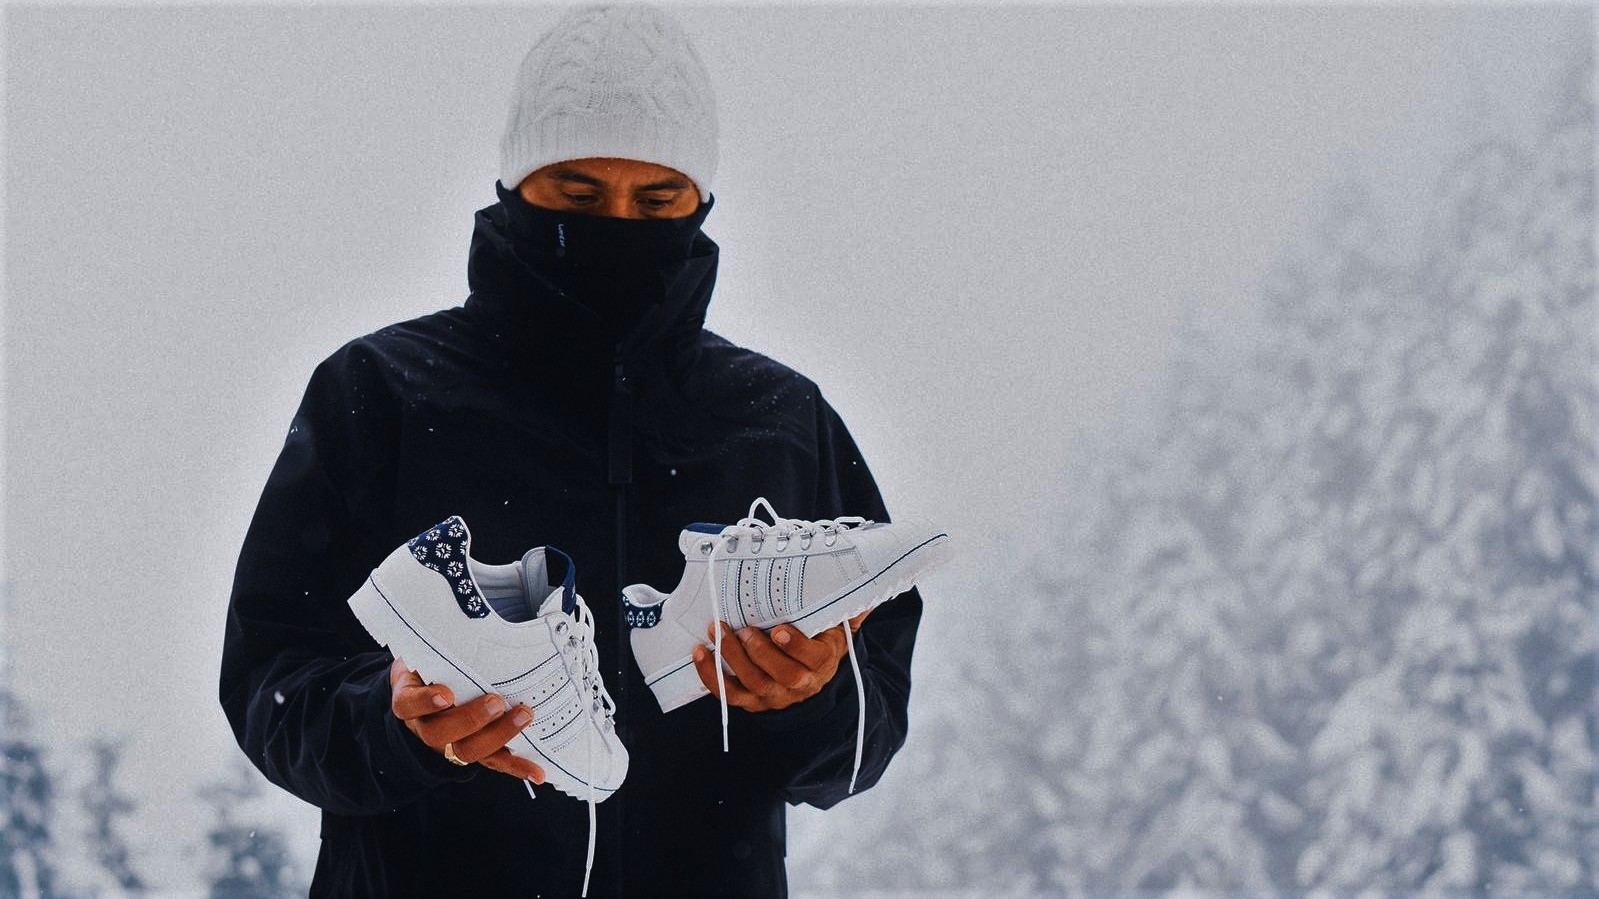 Editorial: Footshop x adidas Superstar 'Blueprinting' on the snow